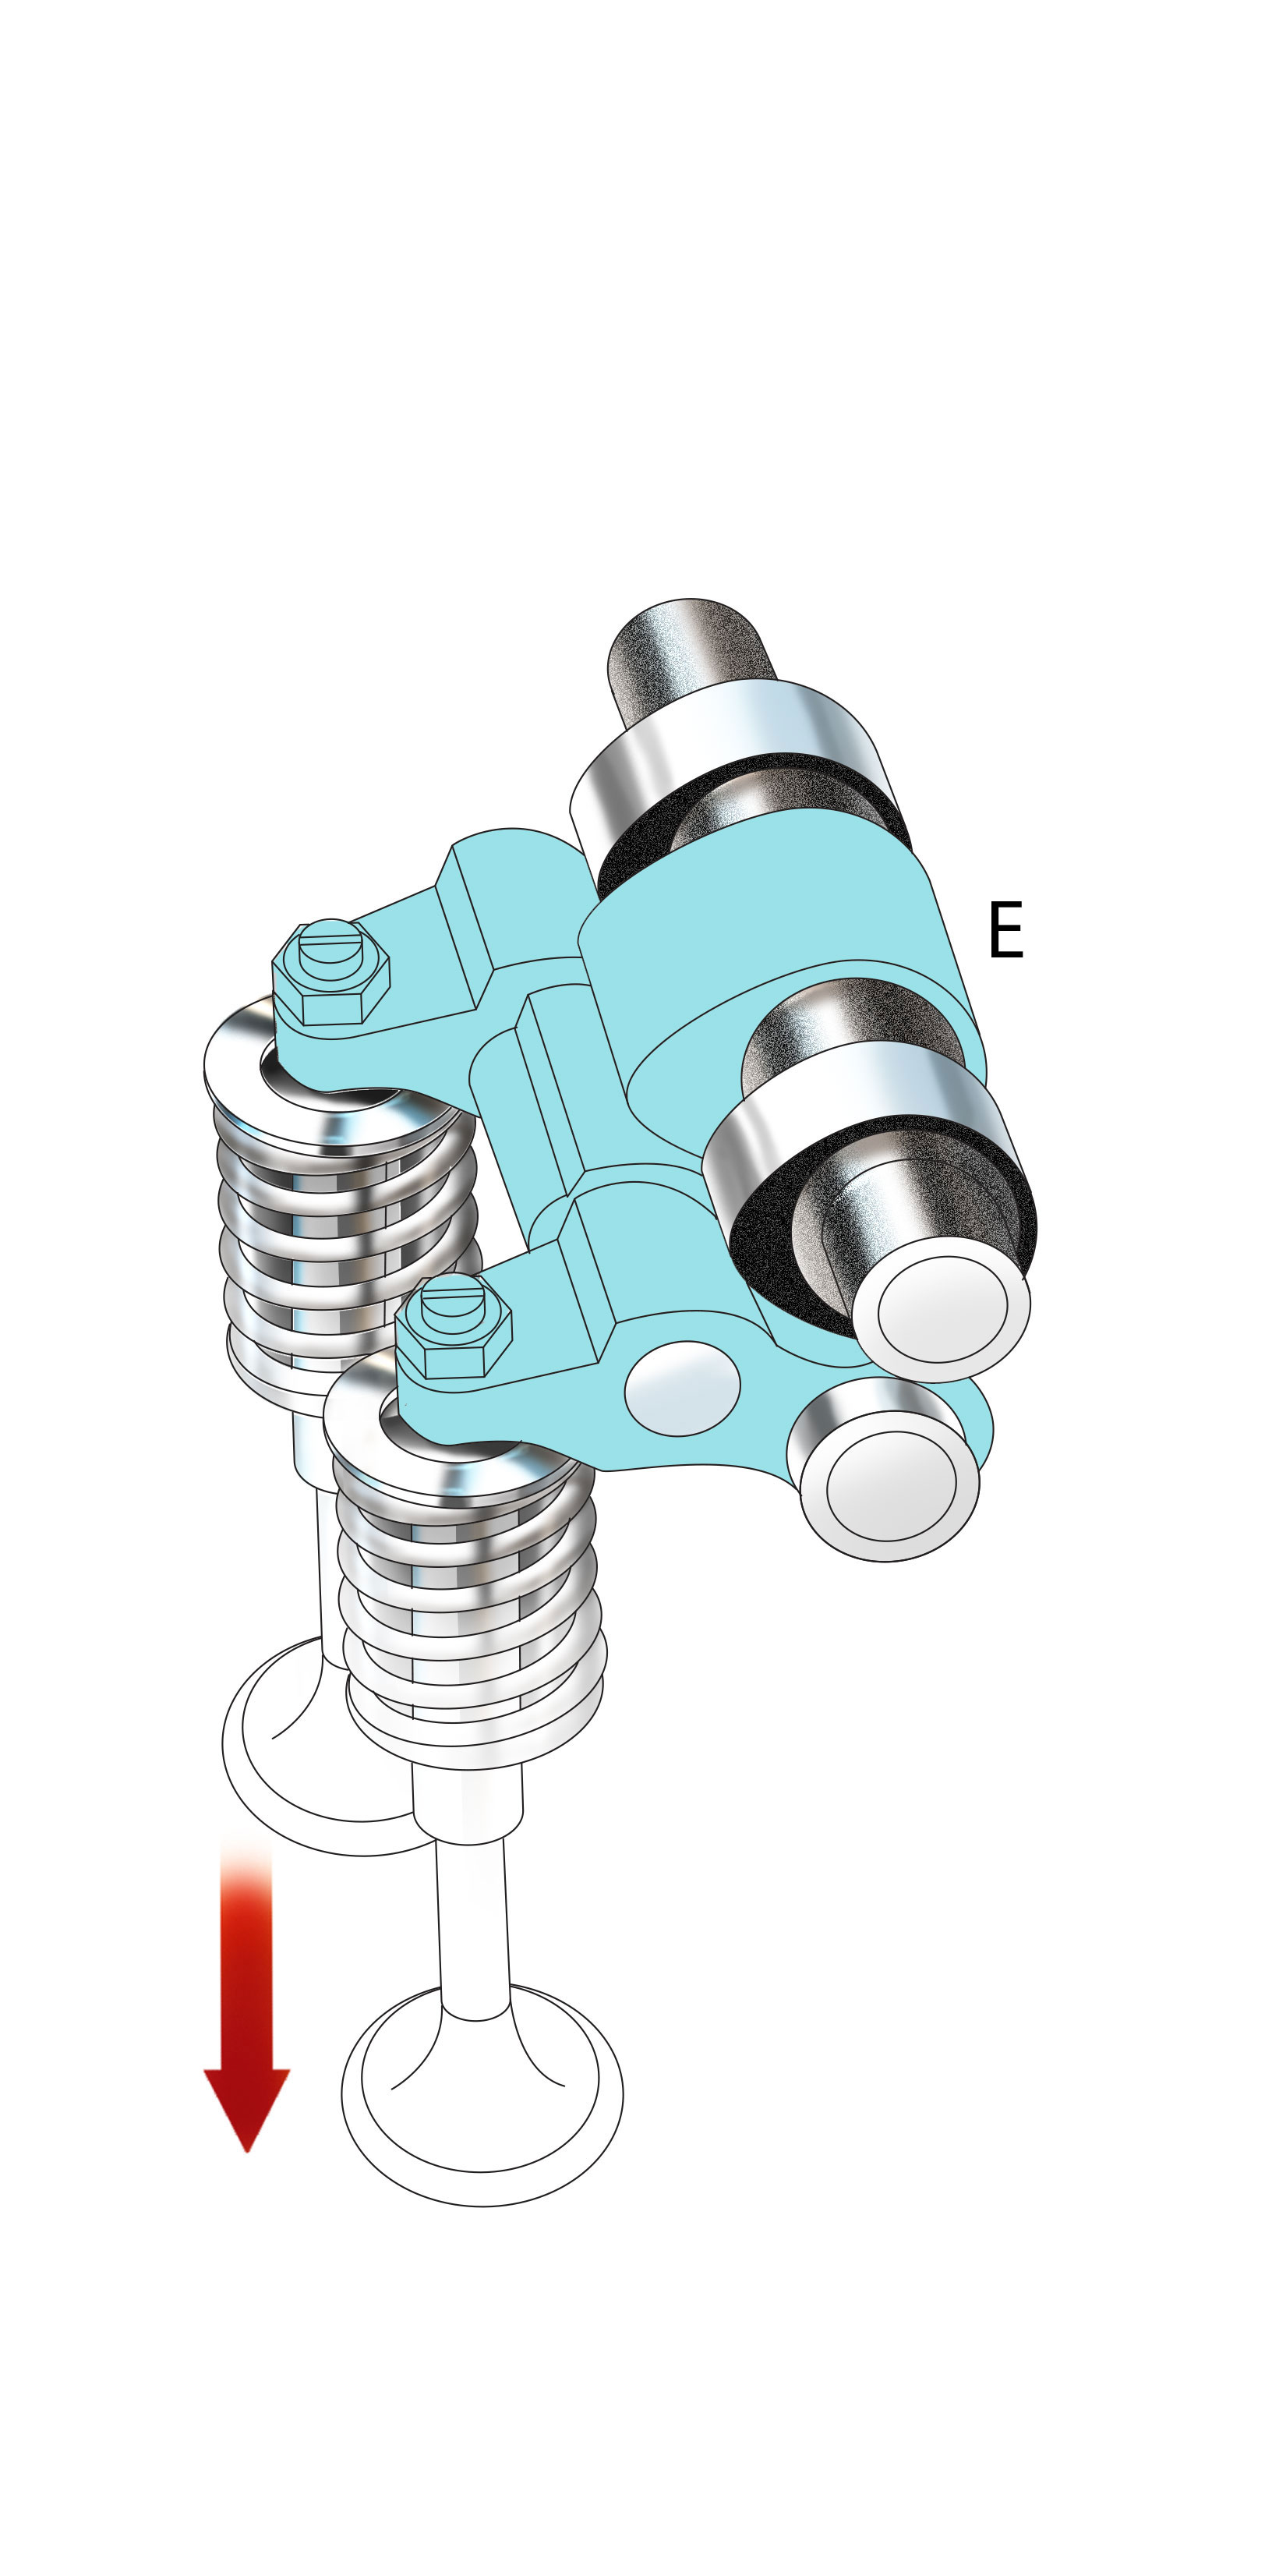 HIGH RPM: The more-aggressive profile of the center cam lobe (E) moves the valves farther down and holds them open longer to increase the fueland- air mixture entering the engine.